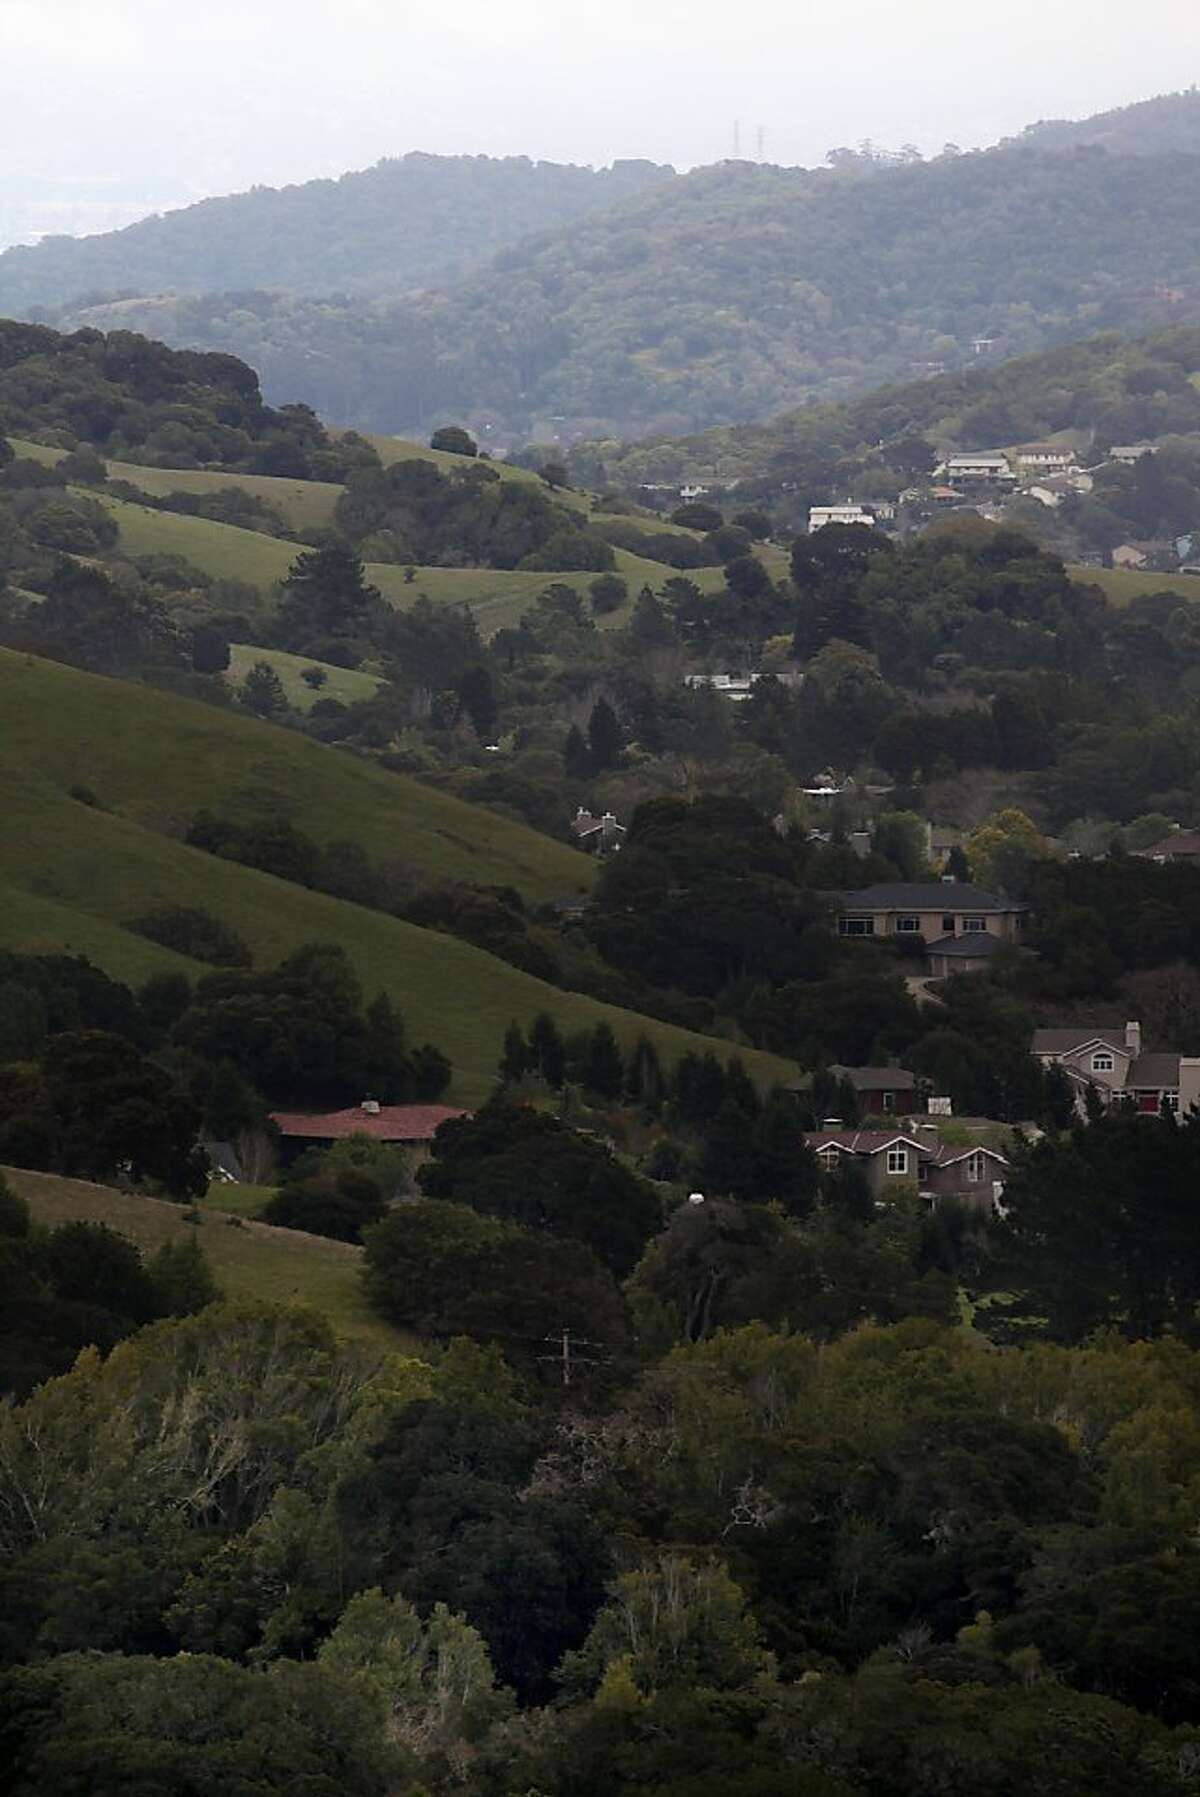 George Lucas will not be building a 270,000 square foot digital media production compound on Grady Ranch in San Rafael, Calif., on the clear hillside (front left, in front of red roof) fronting a 174 house community seen in the background on Friday, March 30, 2012.